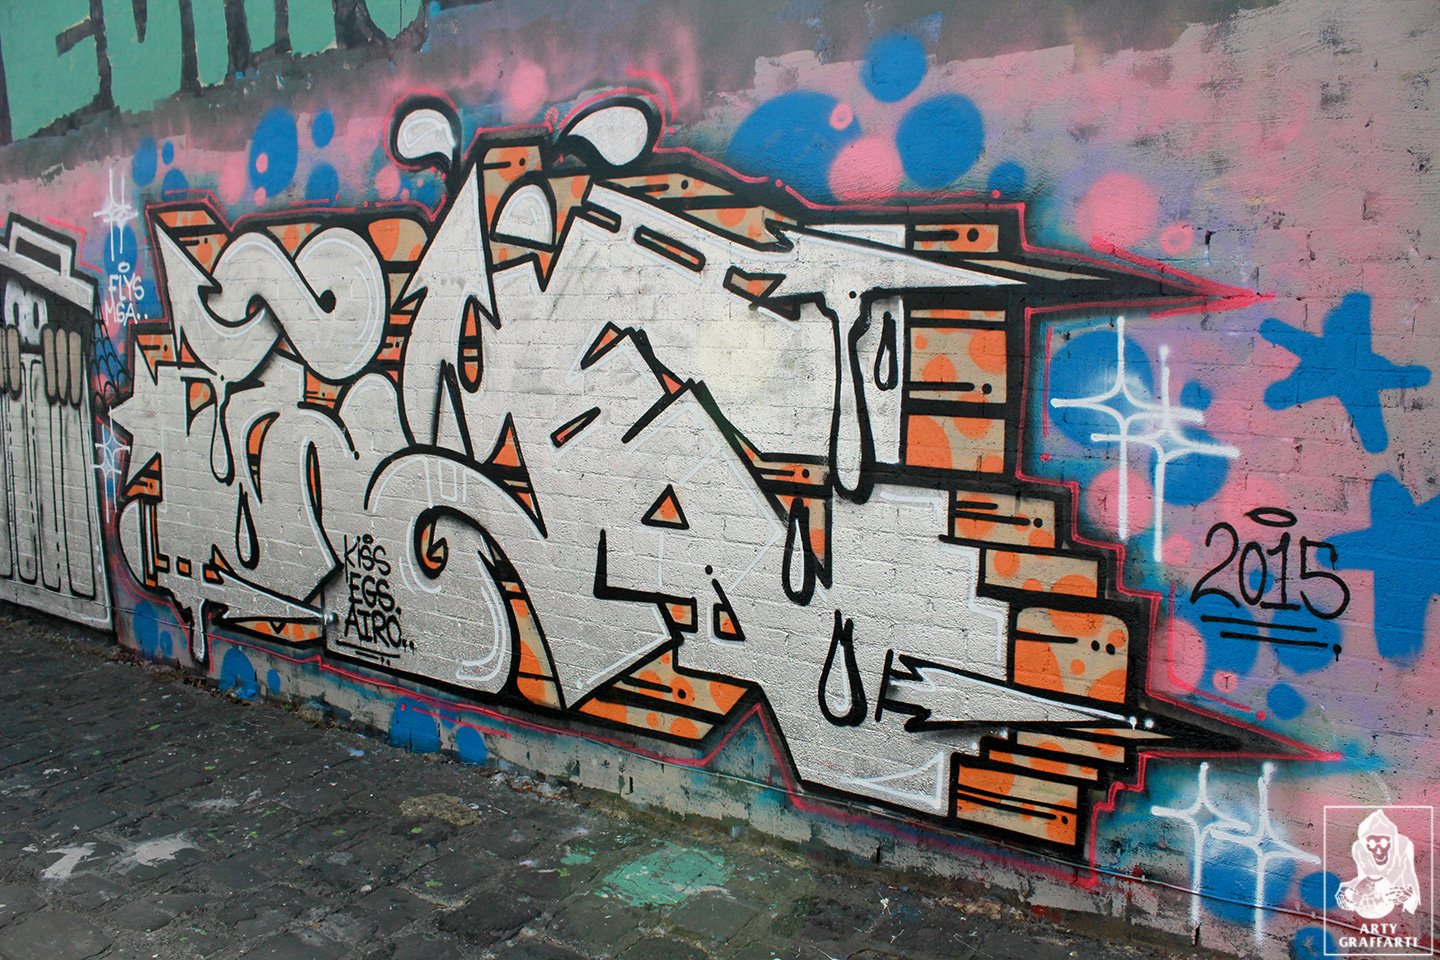 Pokie-Eye-Fitzroy-Graffiti-Melbourne-Arty-Graffarti9